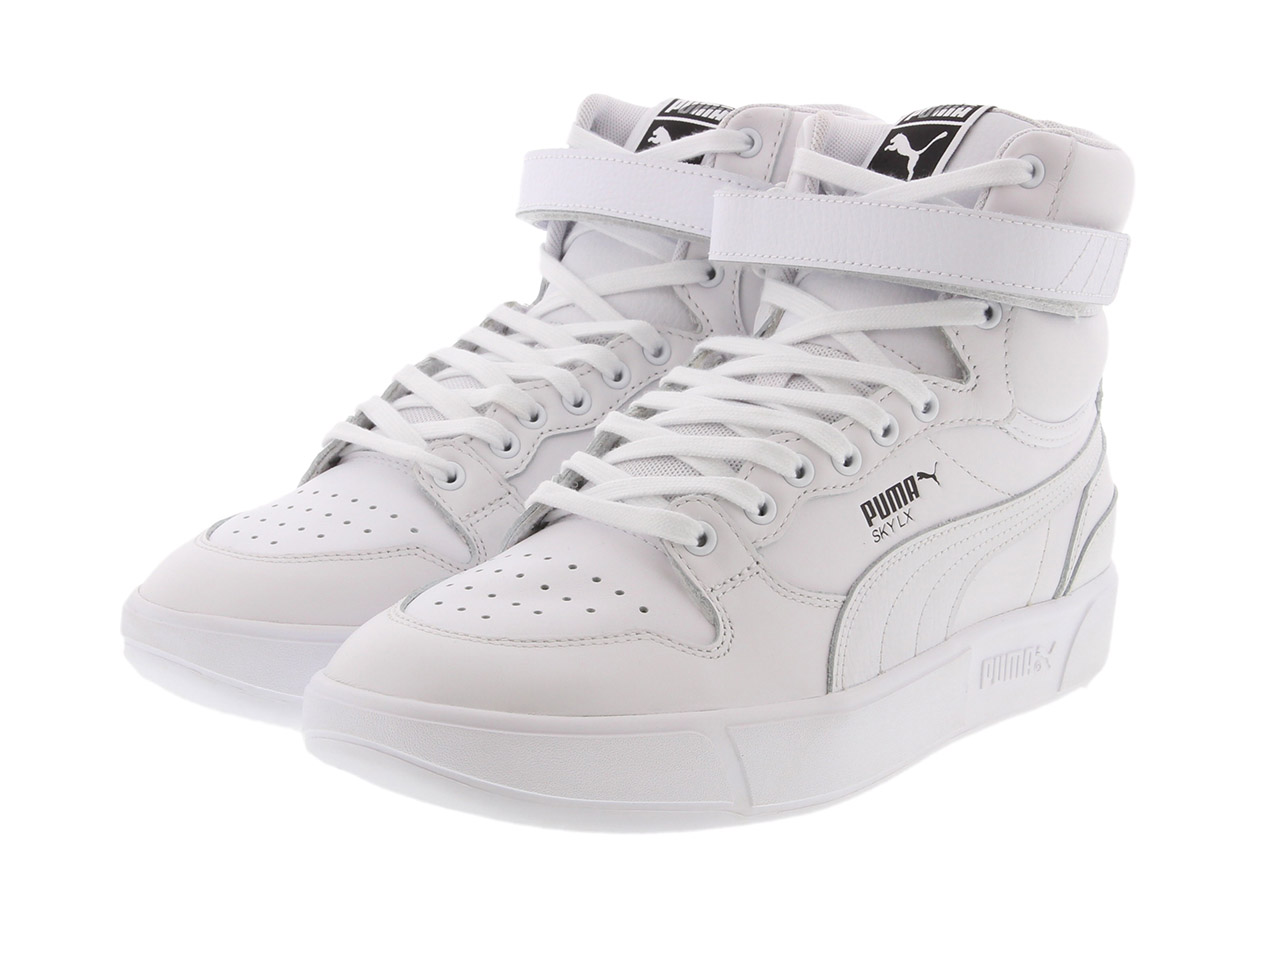 【30%OFF】PUMA SKY LX MID ATHLETIC - 372874-04